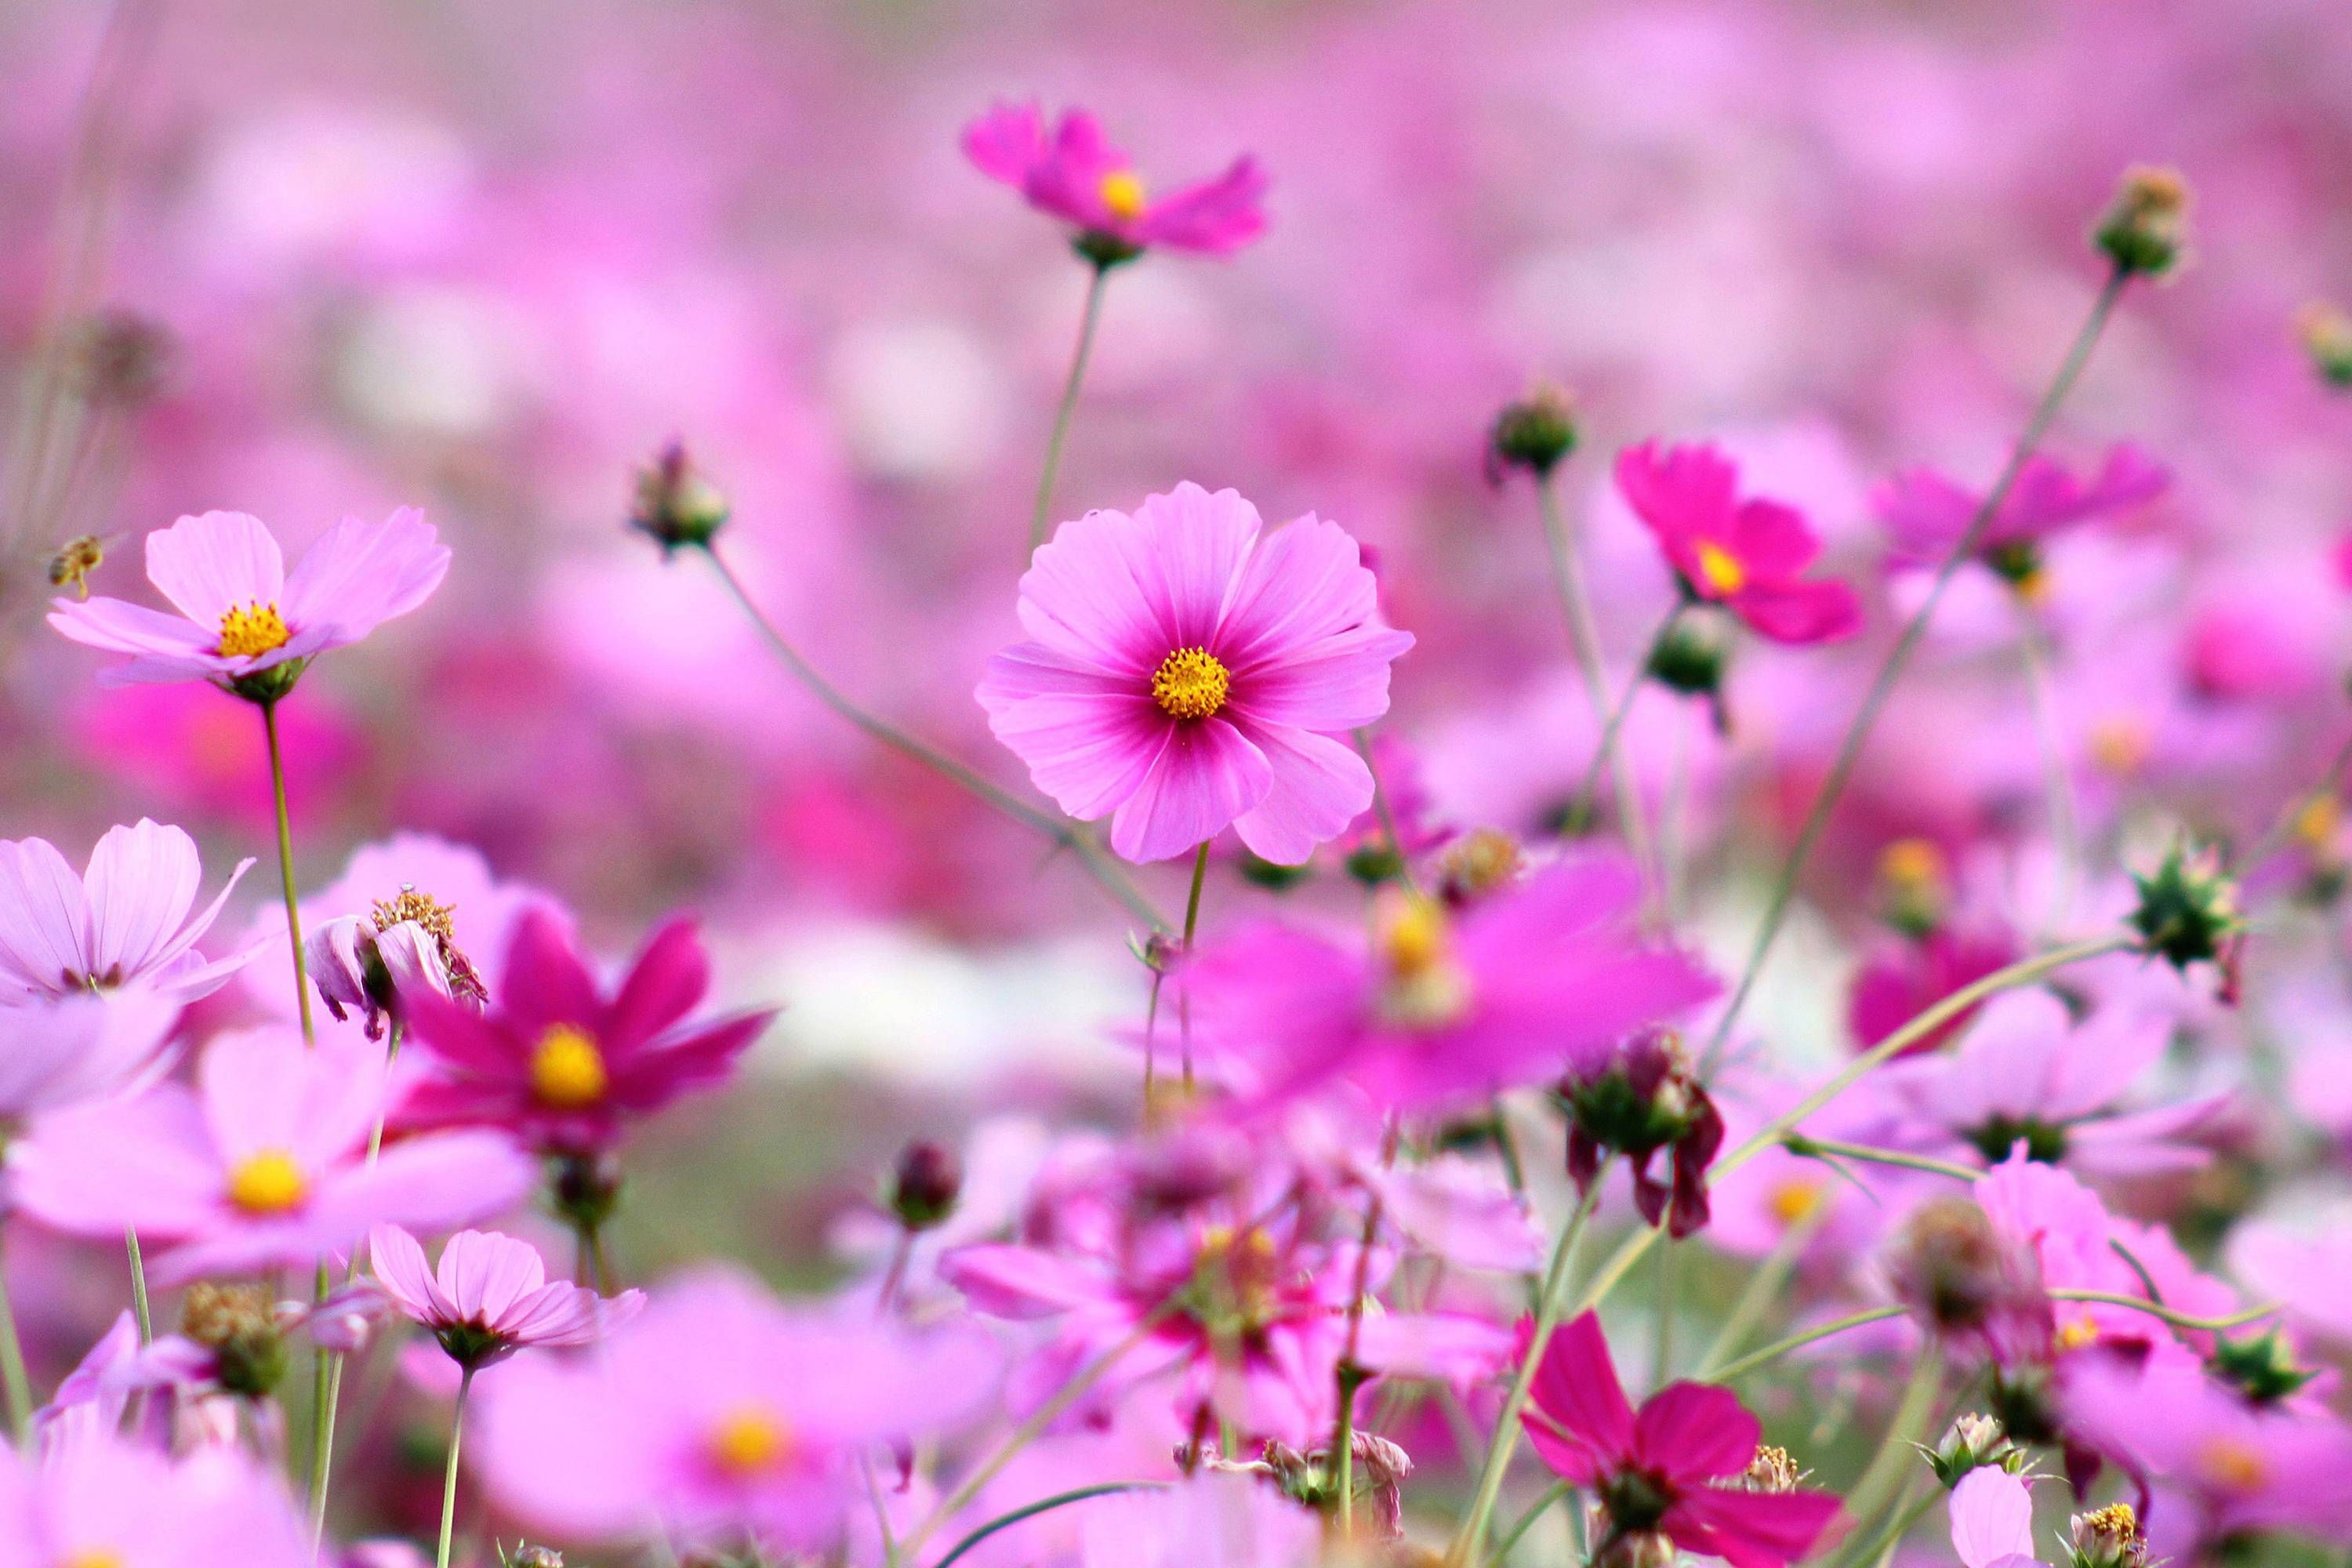 Best Of Hd Flower Wallpaper For Computer And Description In 2020 Purple Flowers Wallpaper Pink Flowers Wallpaper Best Flower Wallpaper